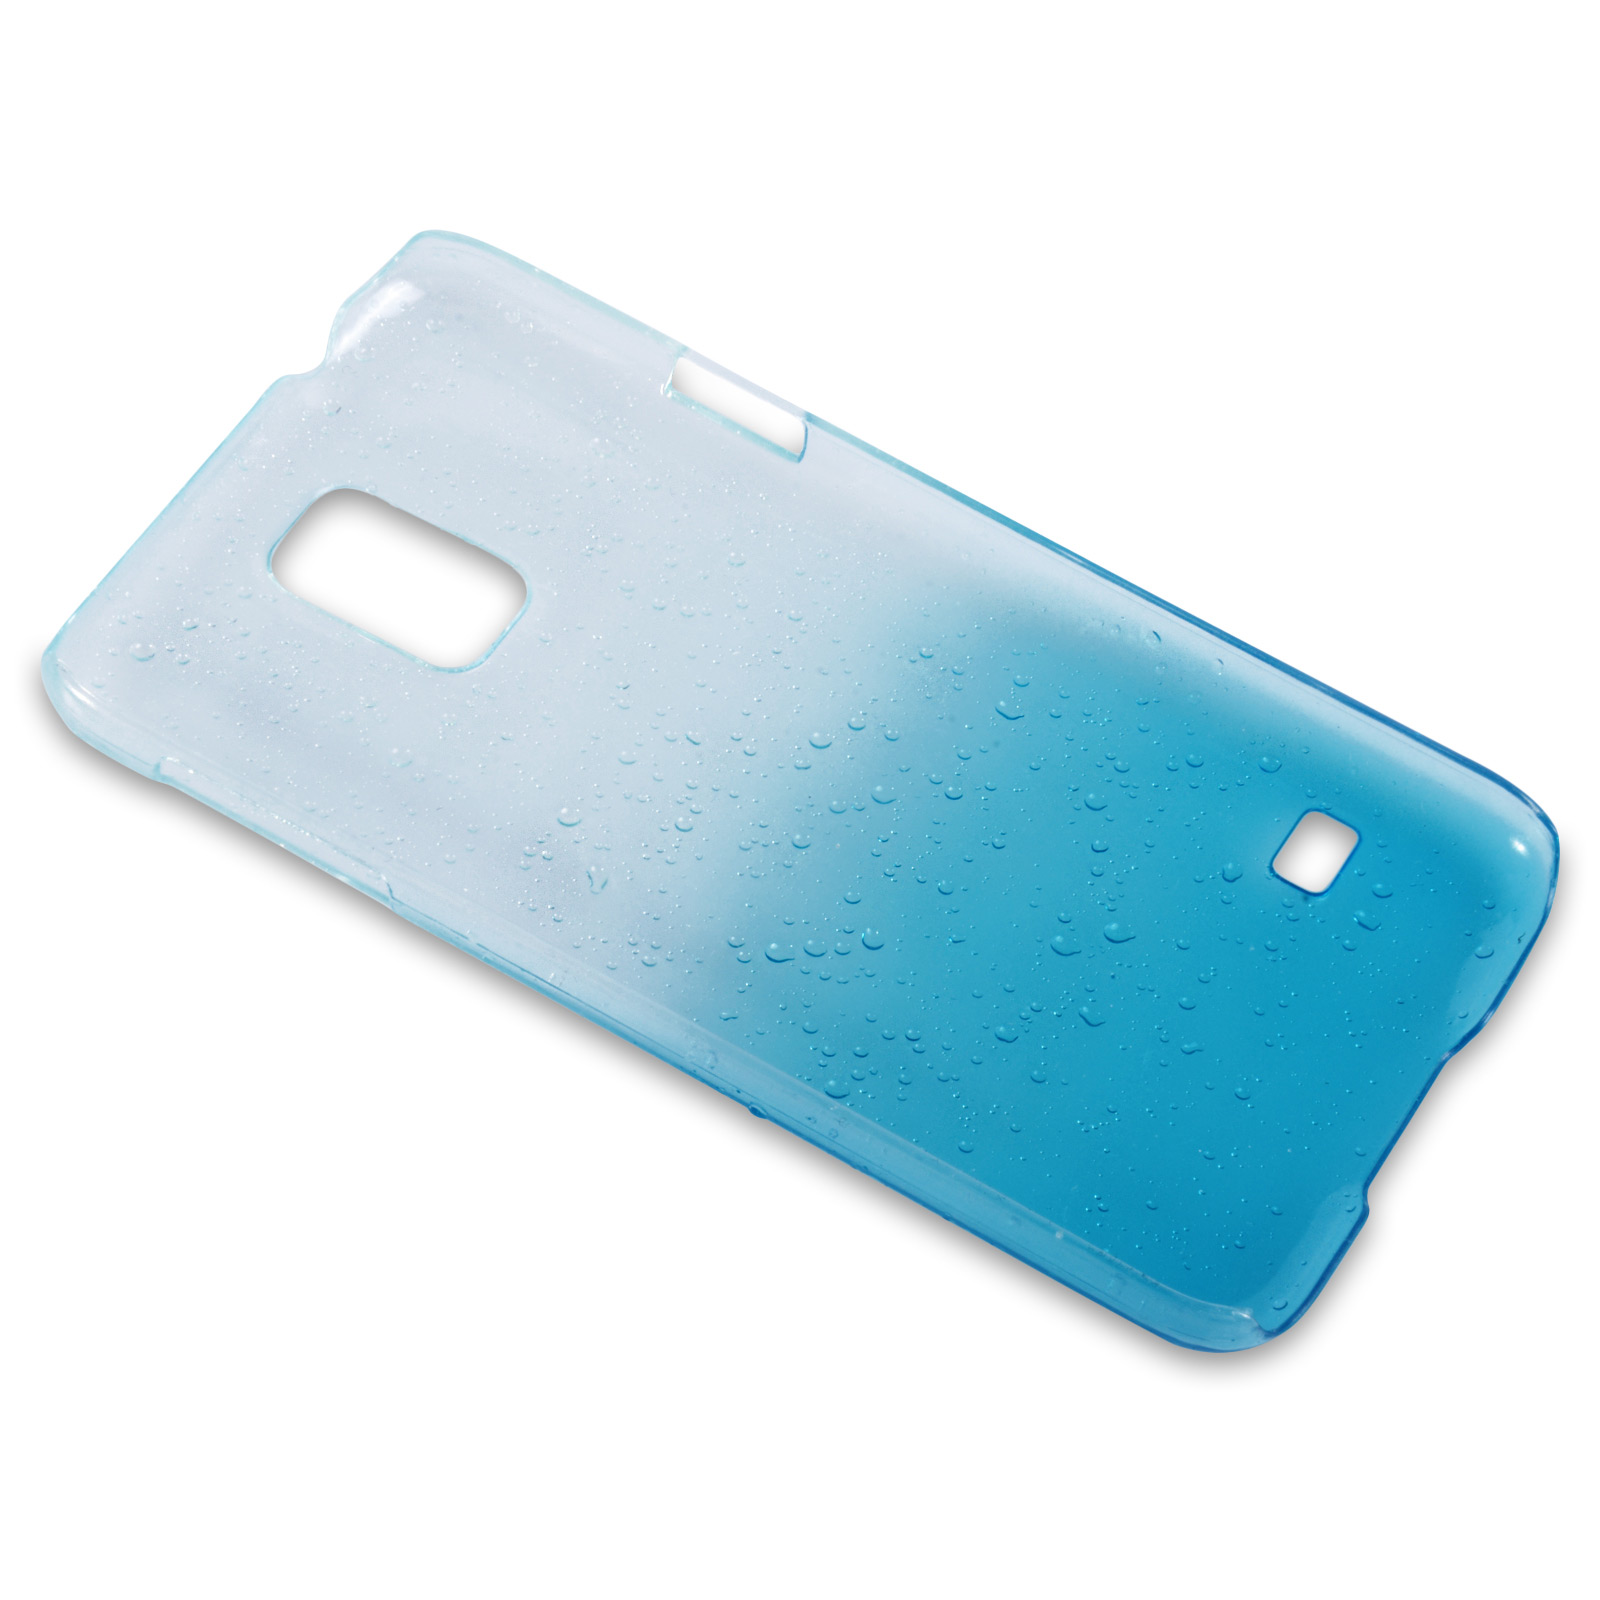 YouSave Accessories Samsung Galaxy S5 Raindrop Hard Case - Blue-Clear